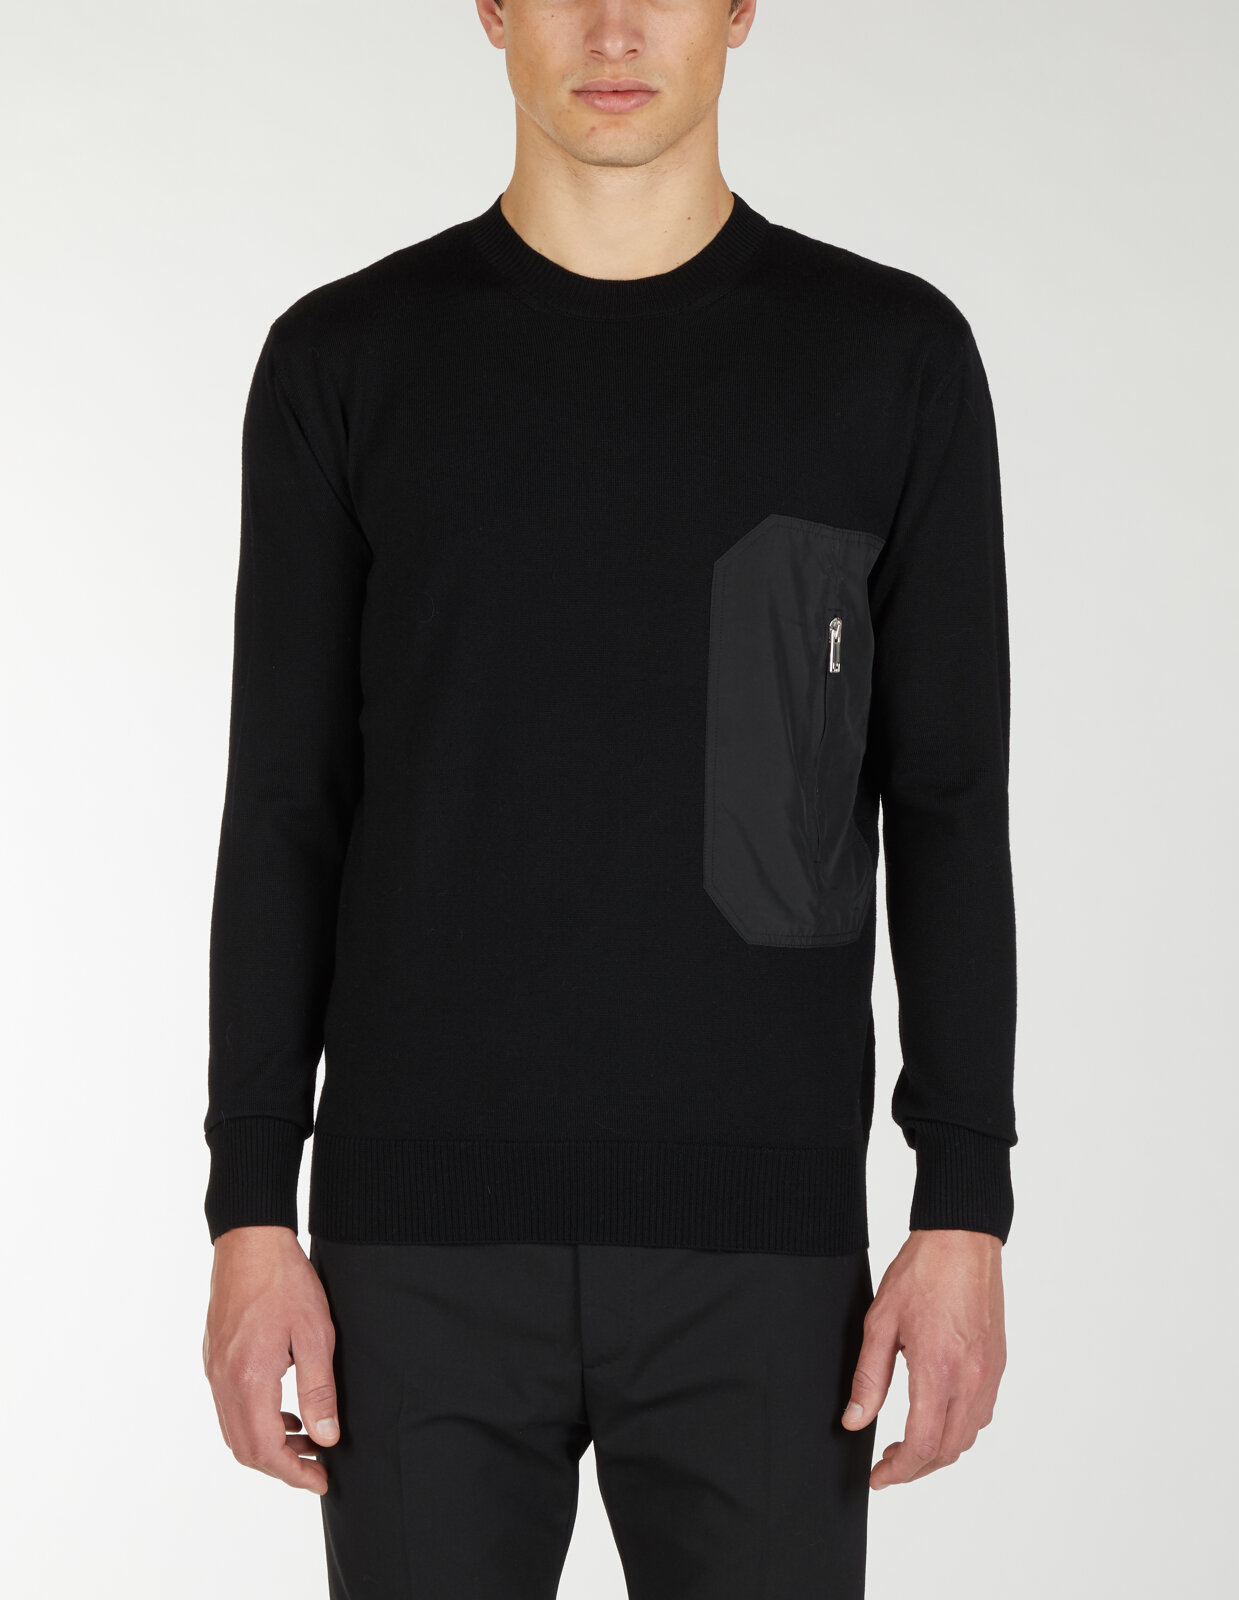 Round Neck Sweater With Nylon Pocket - Les Hommes